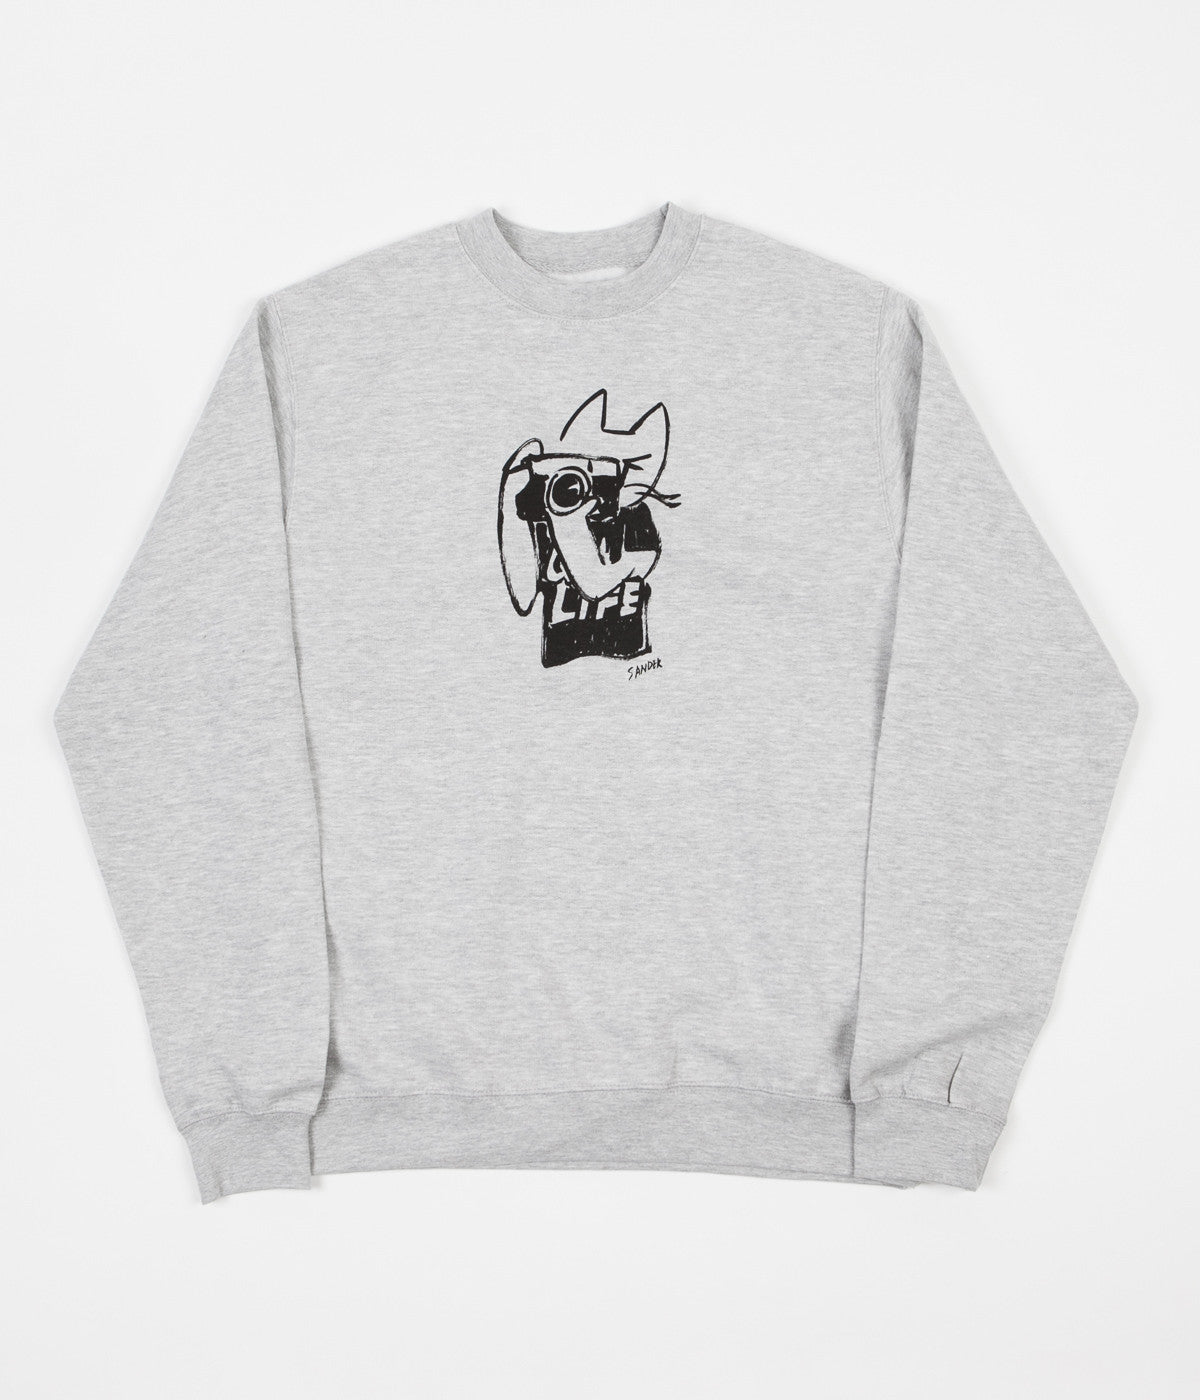 The Quiet Life Sanders Camera Cat Crewneck Sweatshirt - Heather Grey